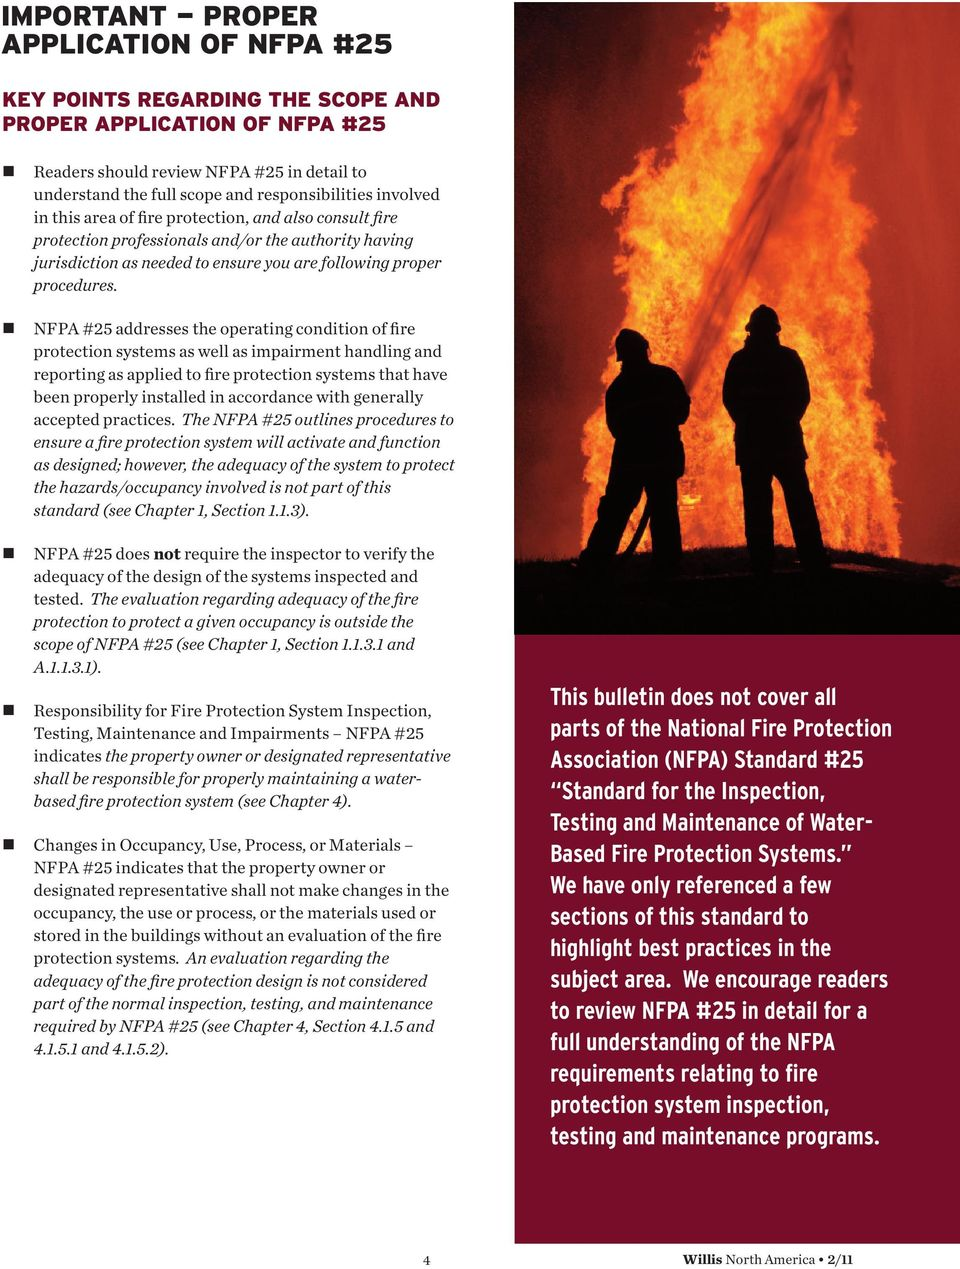 NFPA #25 addresses the operatig coditio of fire protectio systems as well as impairmet hadlig ad reportig as applied to fire protectio systems that have bee properly istalled i accordace with